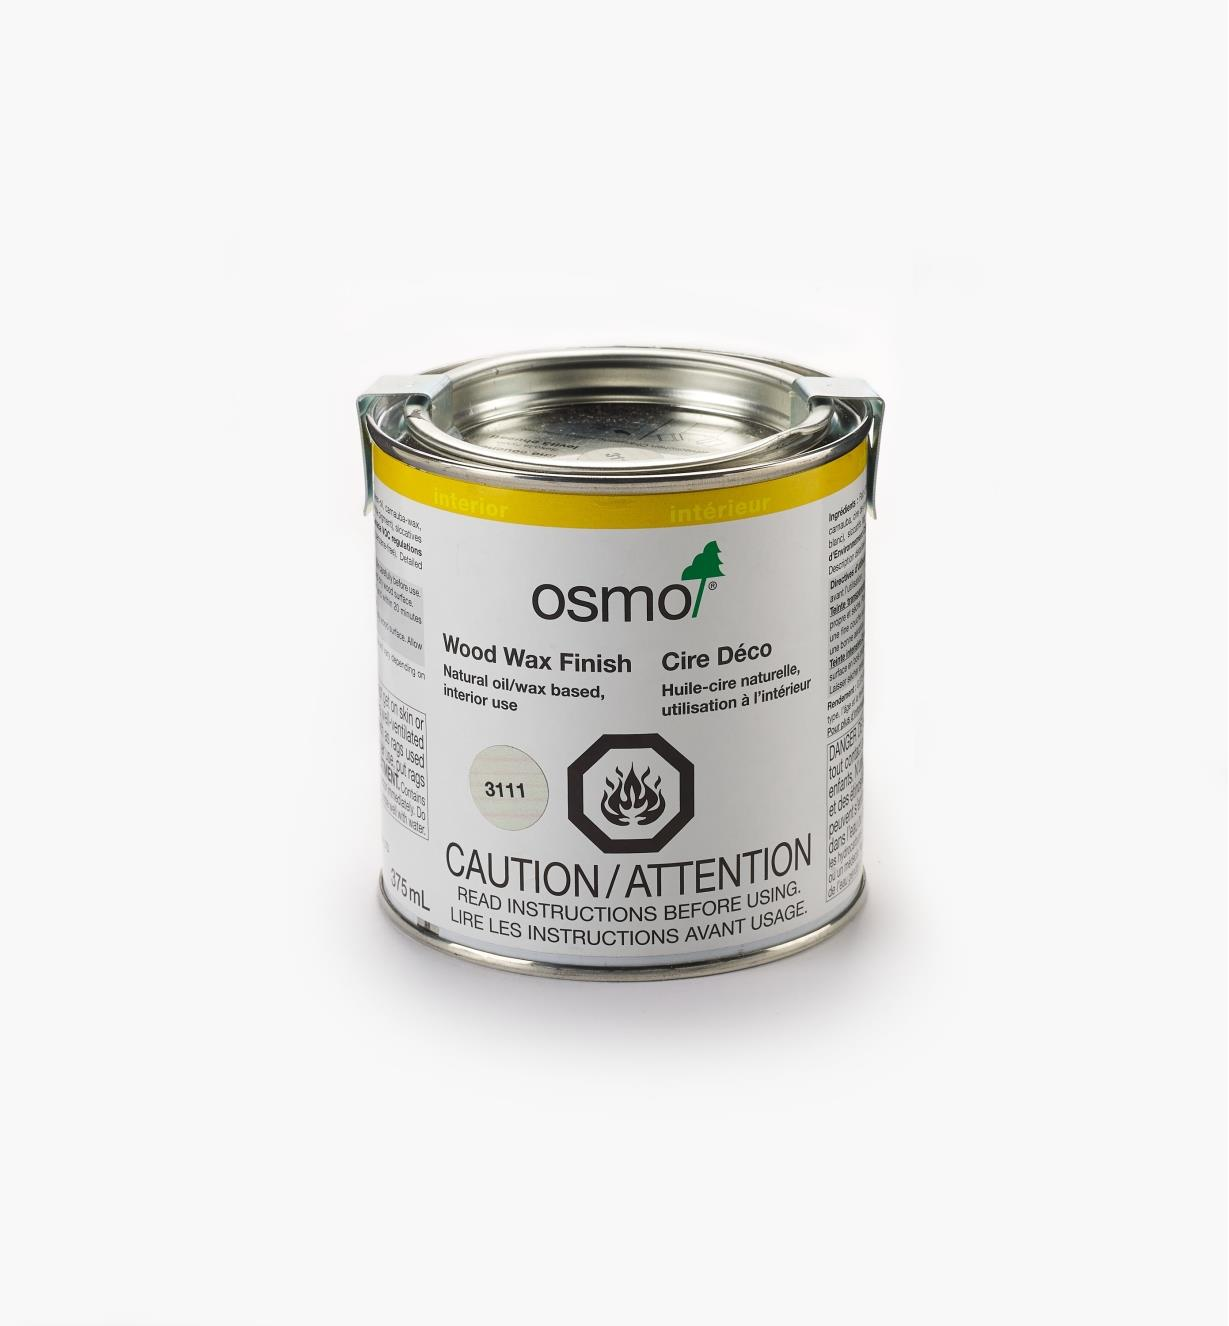 27K2750 - Osmo 3111 White Wood Wax, 375ml (12.5 fl oz)